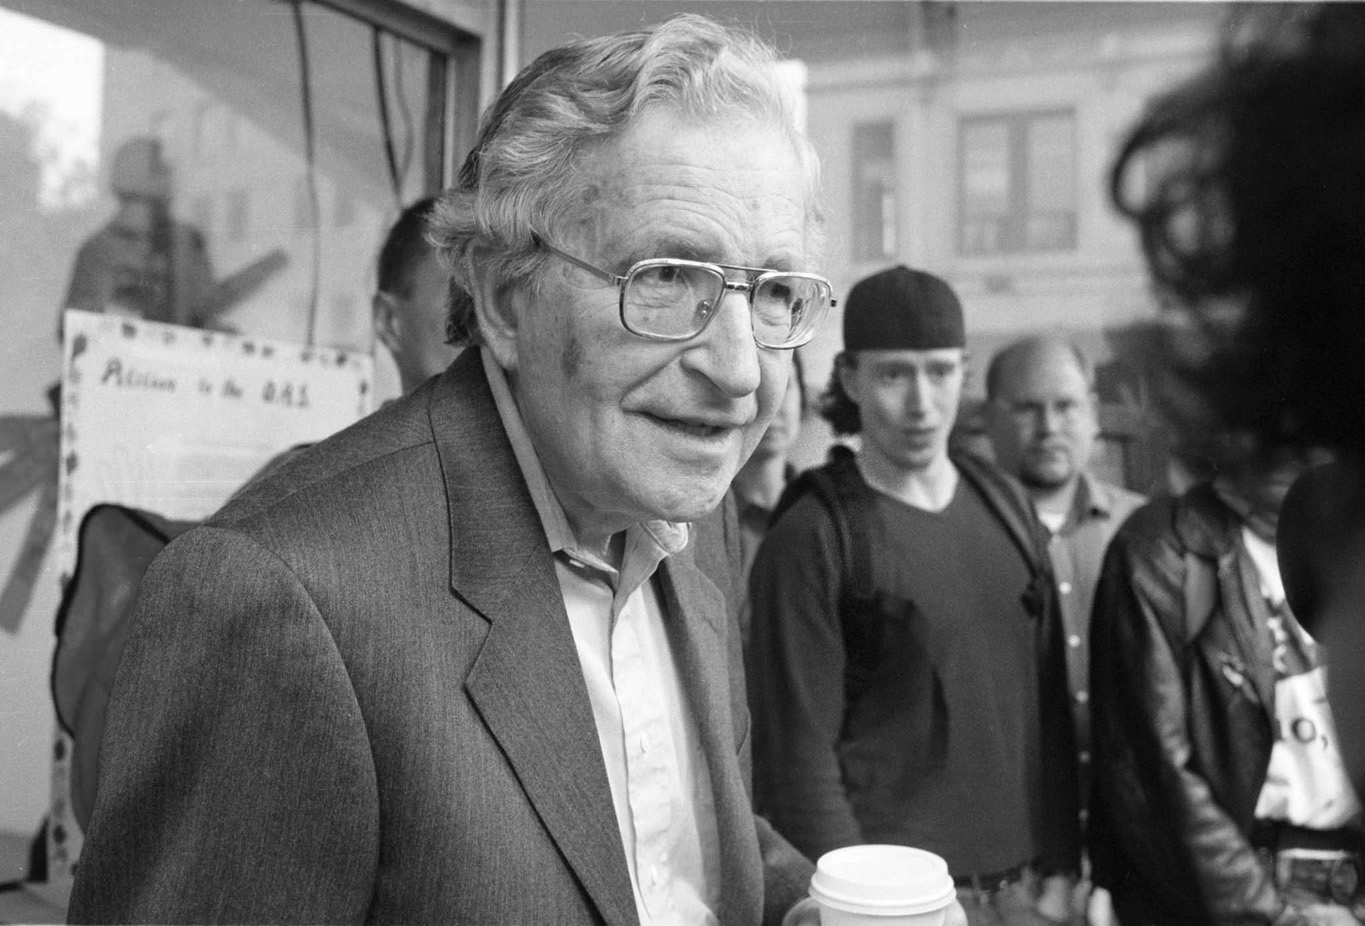 "//www.dd-rd.ca/site/_images/publications/libertas/chomsky.jpg"" cannot be displayed, because it contains errors."